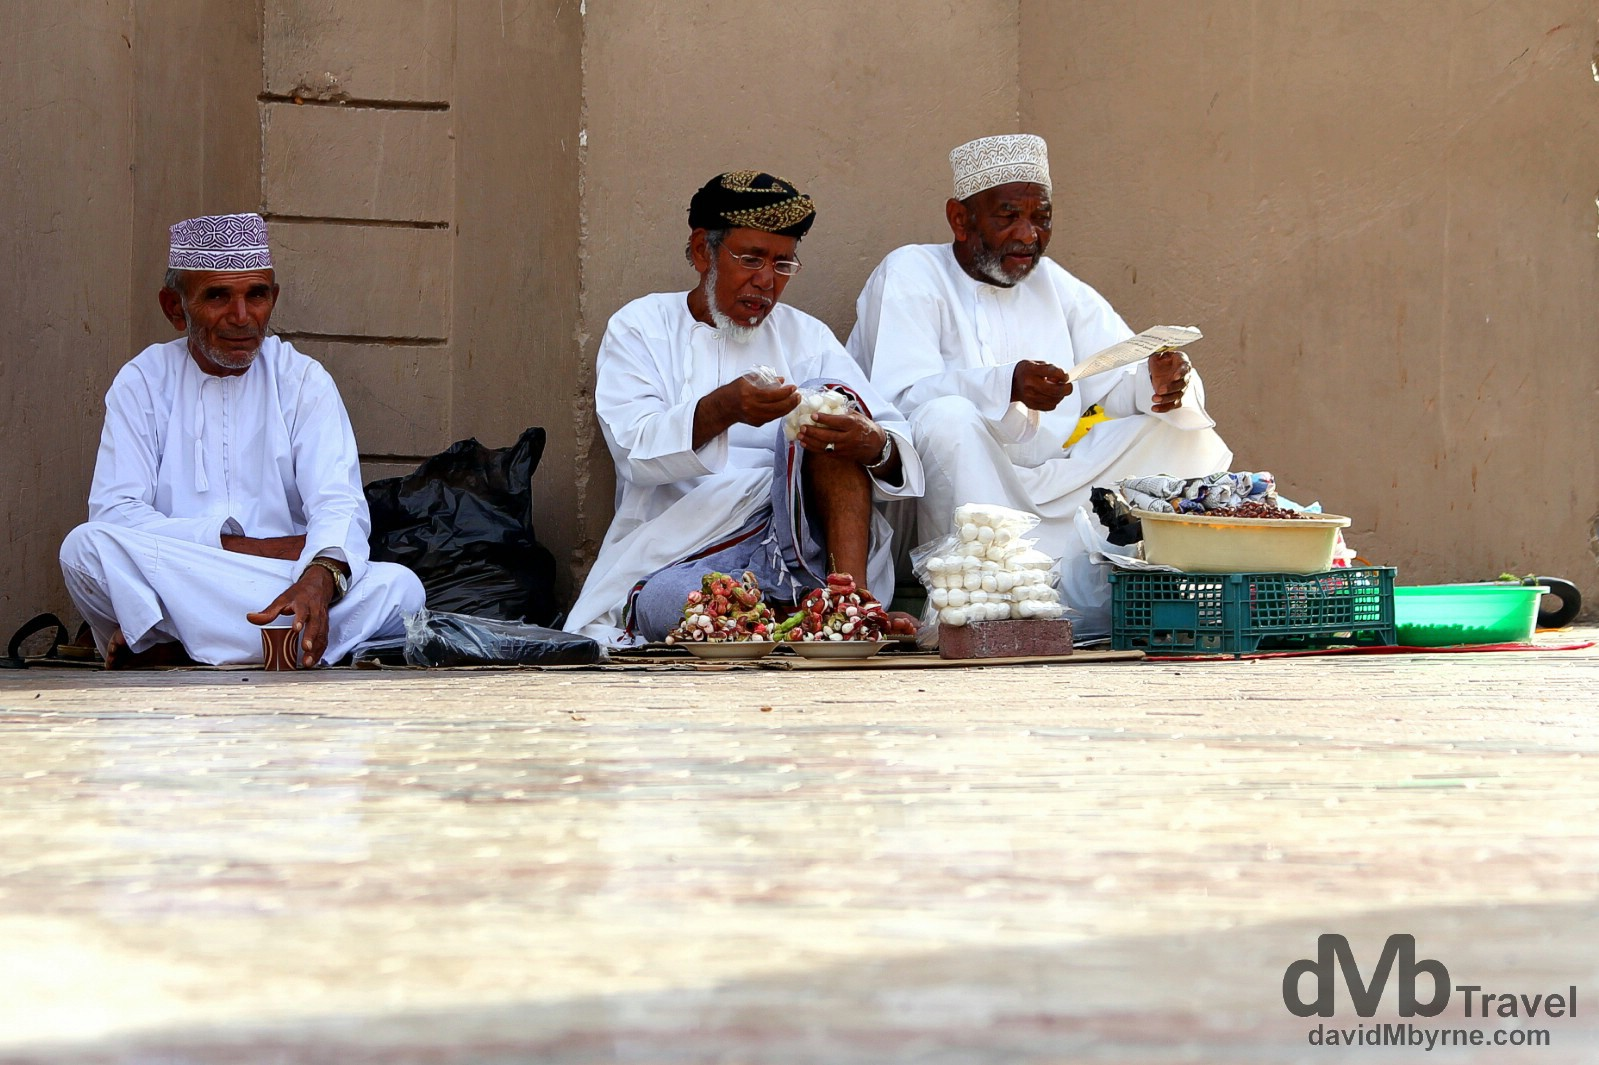 Setting up to begin selling outside the Mutrah Souq (marketplace) in Muscat, Oman. April 25th, 2014.